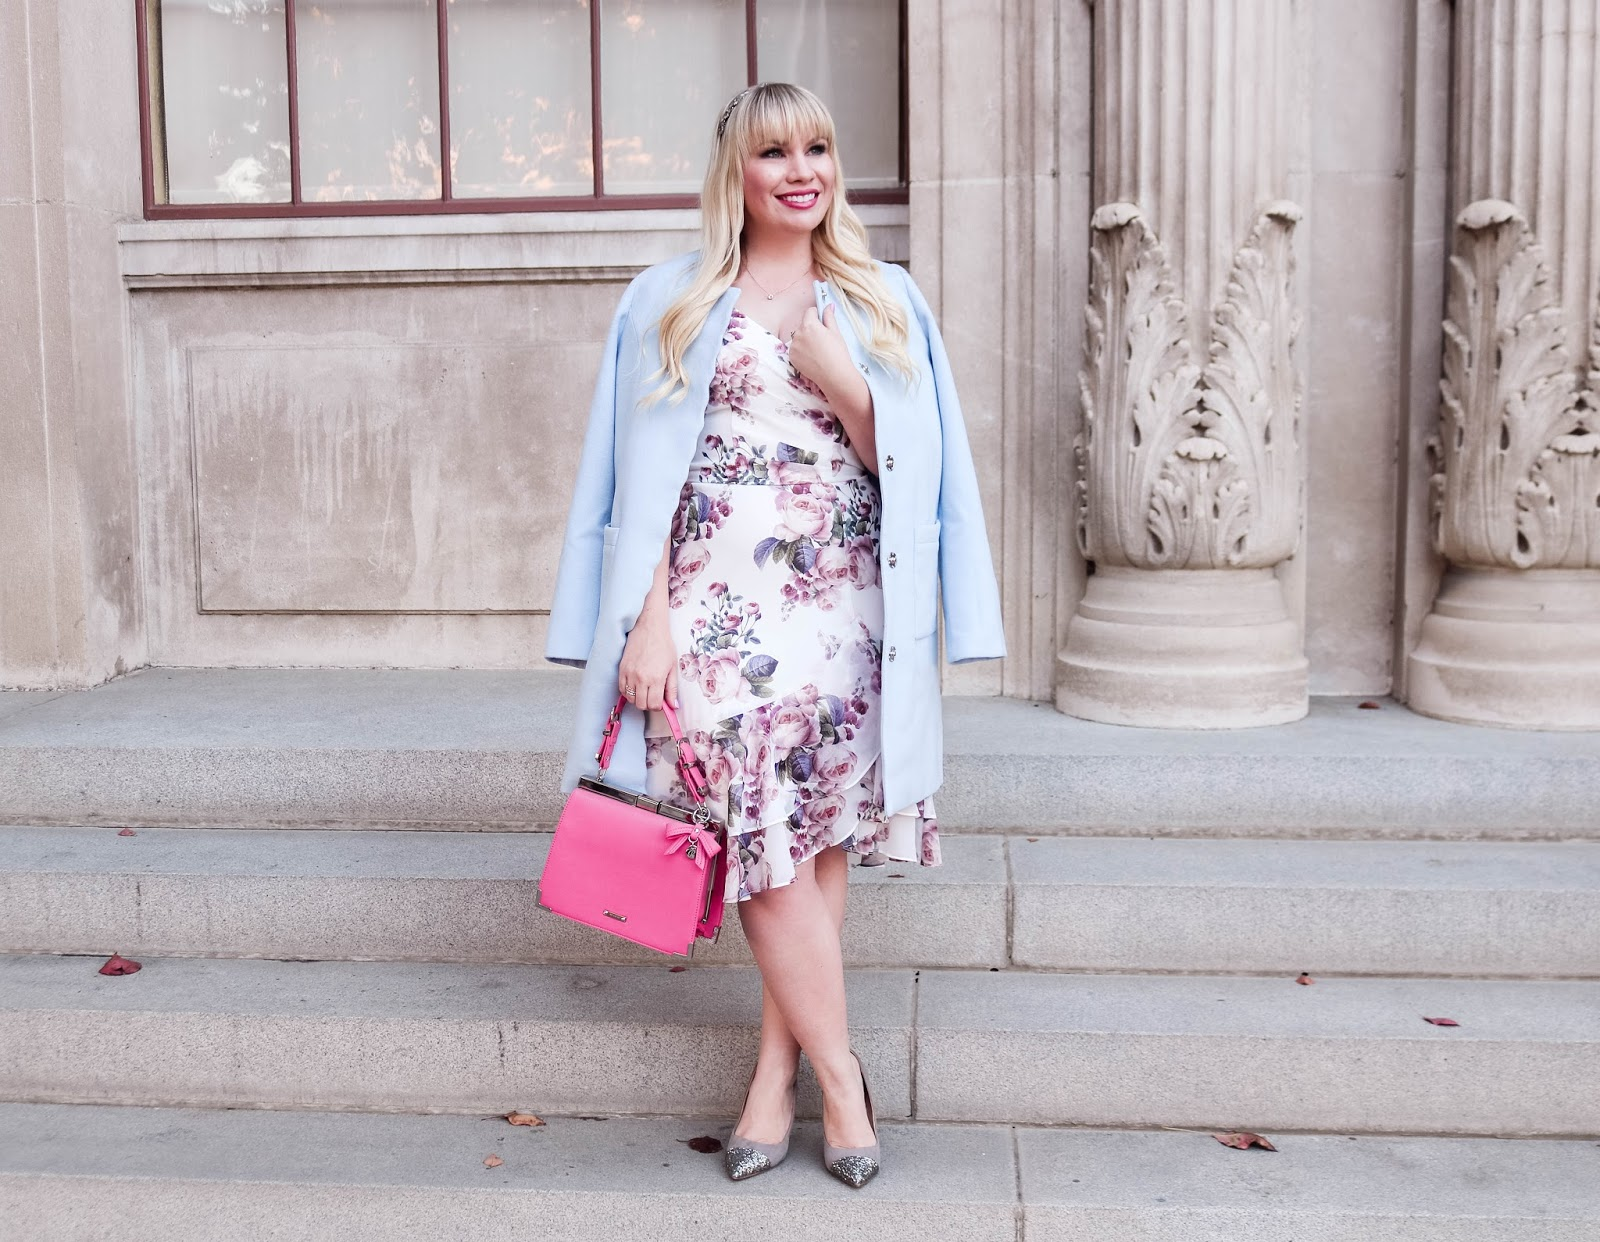 Floral Dress with Light Blue Coat for Winter